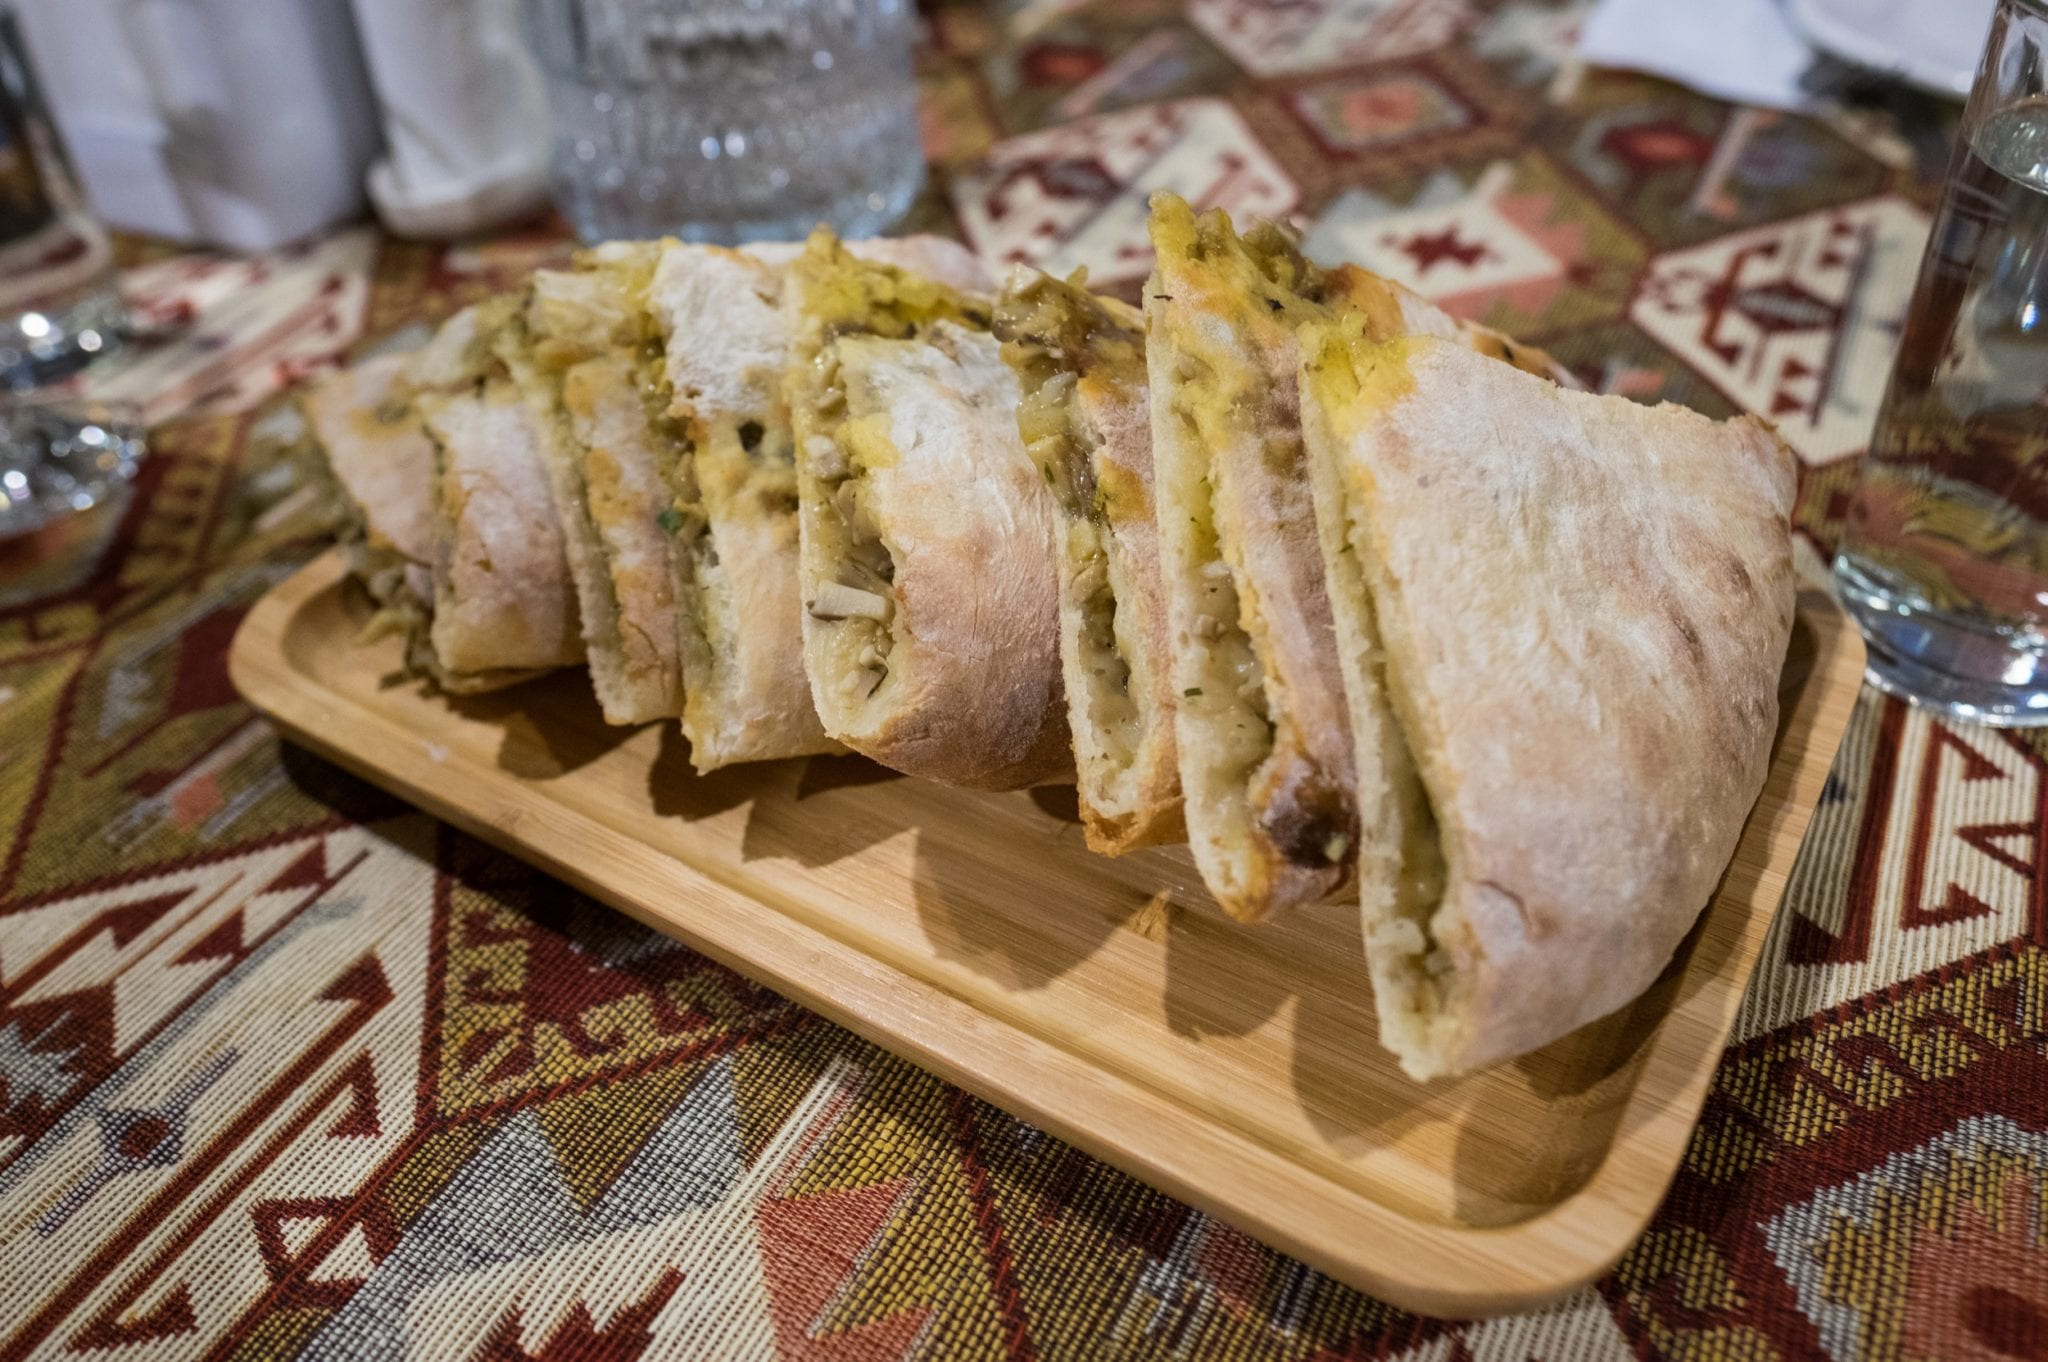 A plate of sliced Svaneti meat-stuffed bread.